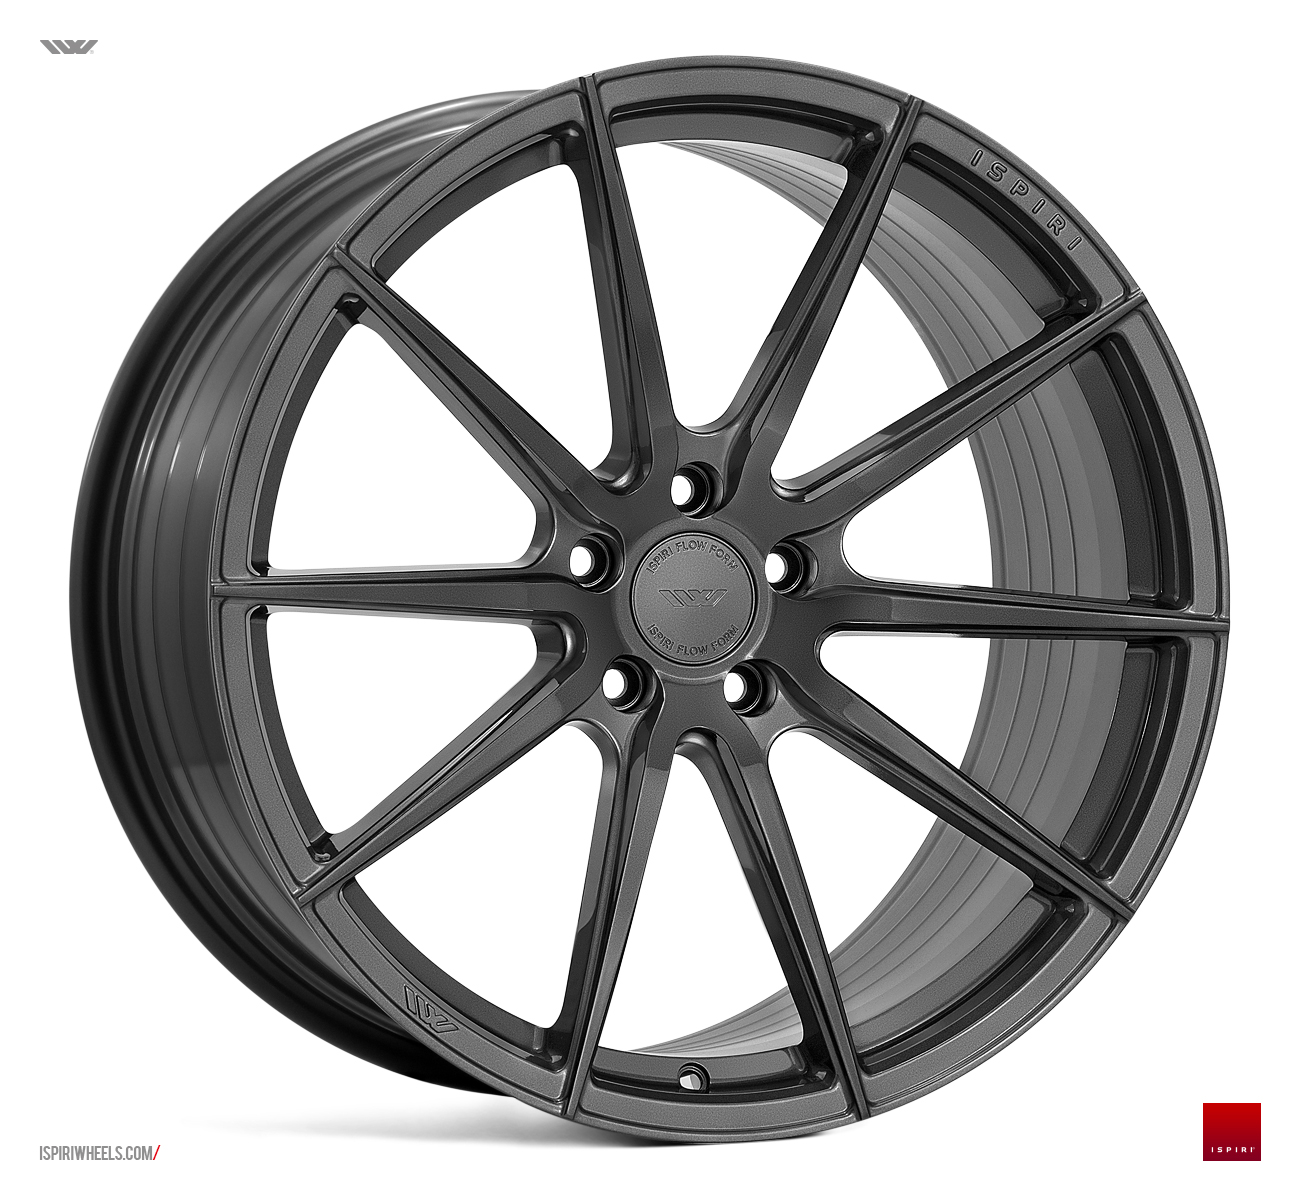 "NEW 19"" ISPIRI FFR1 MULTI-SPOKE ALLOYS IN CARBON GRAPHITE, DEEPER CONCAVE 9.5"" OR 10"" REARS - VARIOUS OFFSETS"